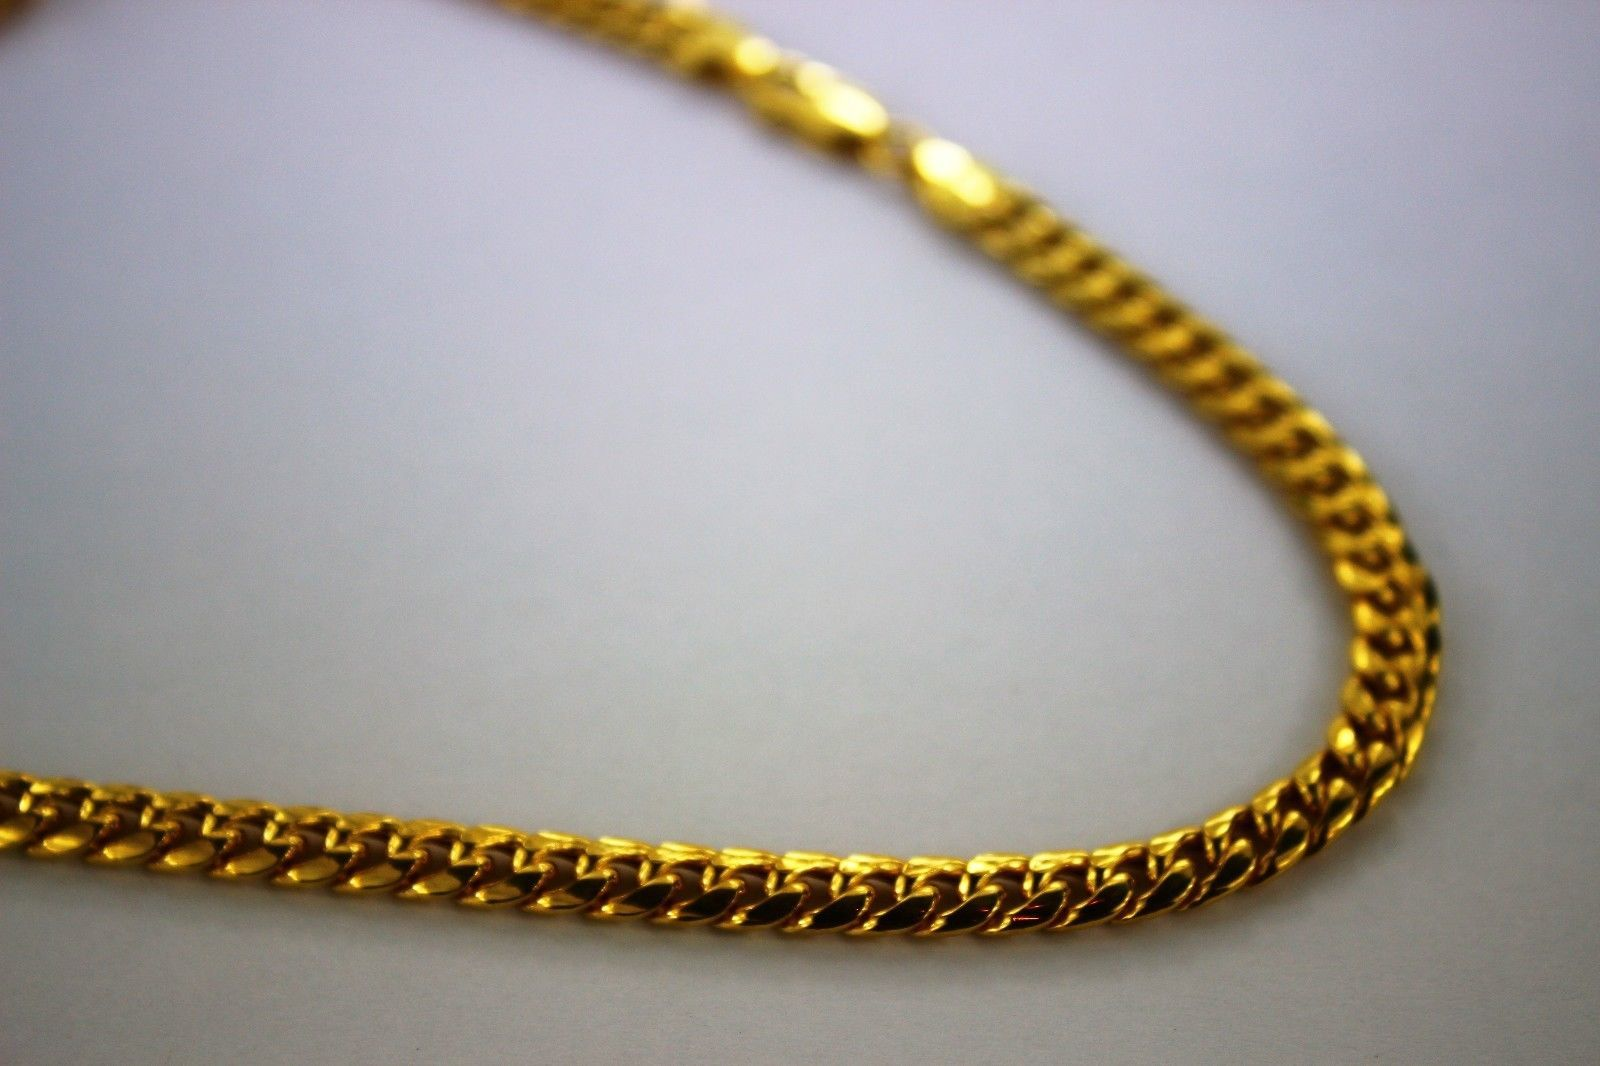 1b395d3b296f9 10K Authentic Hollow Yellow Gold Miami Cuban Link Chain Necklace Men ...